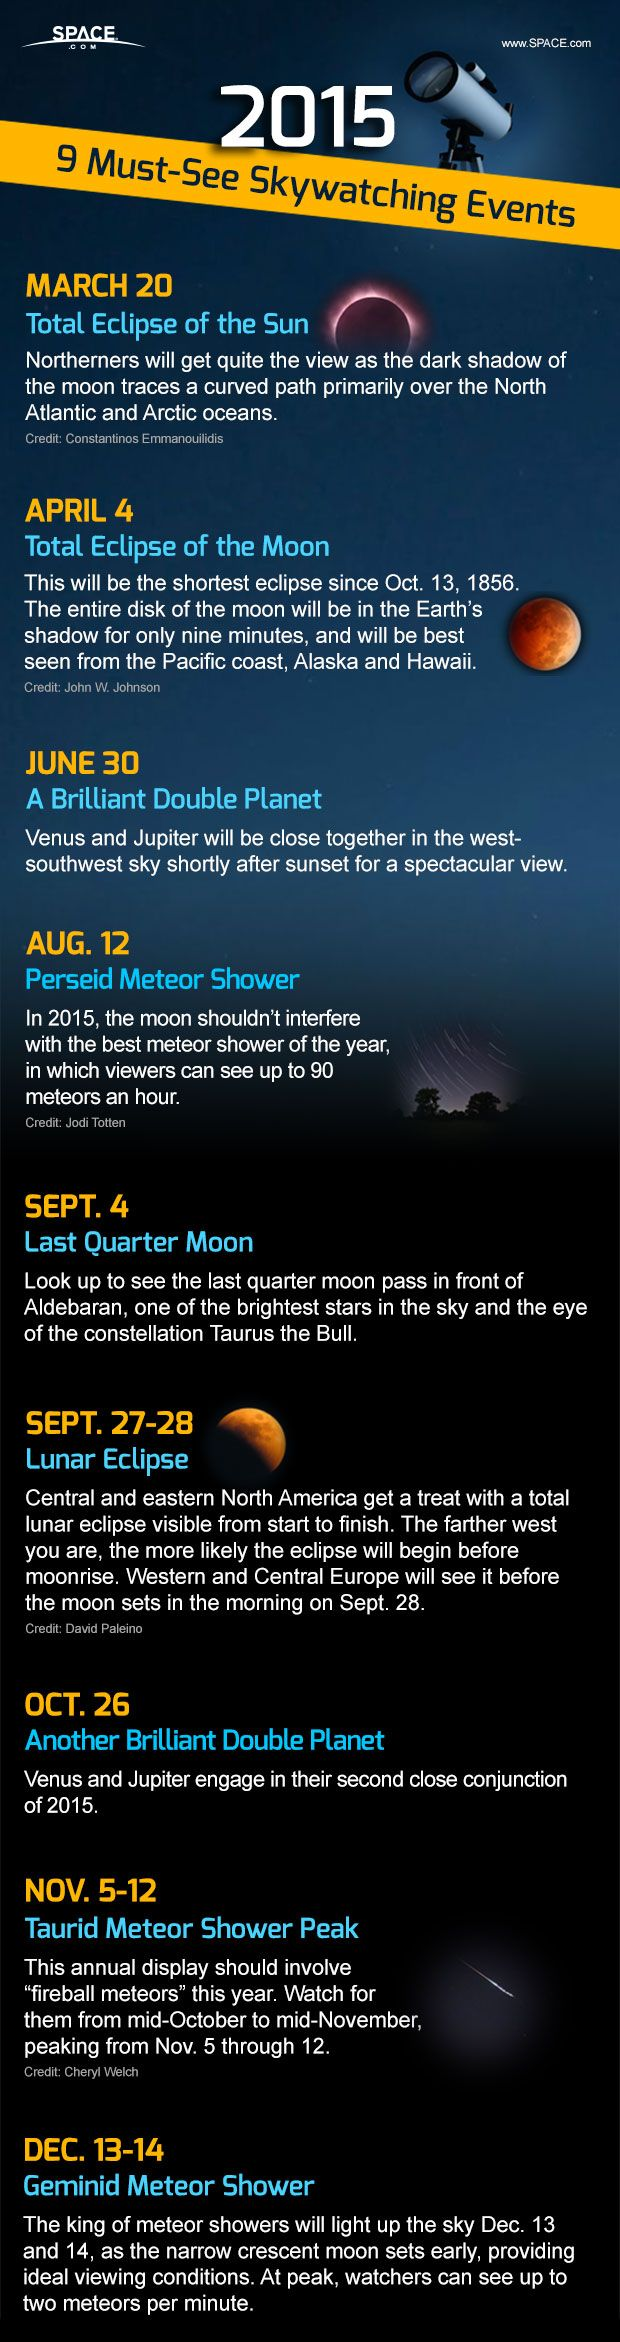 Skywatching in 2015: 9 Must-See Stargazing Events: Space.com The year 2015 is packed full of amazing astronomical sights in the daytime and nighttime sky, from solar and lunar eclipses to dazzlingly bright planets.